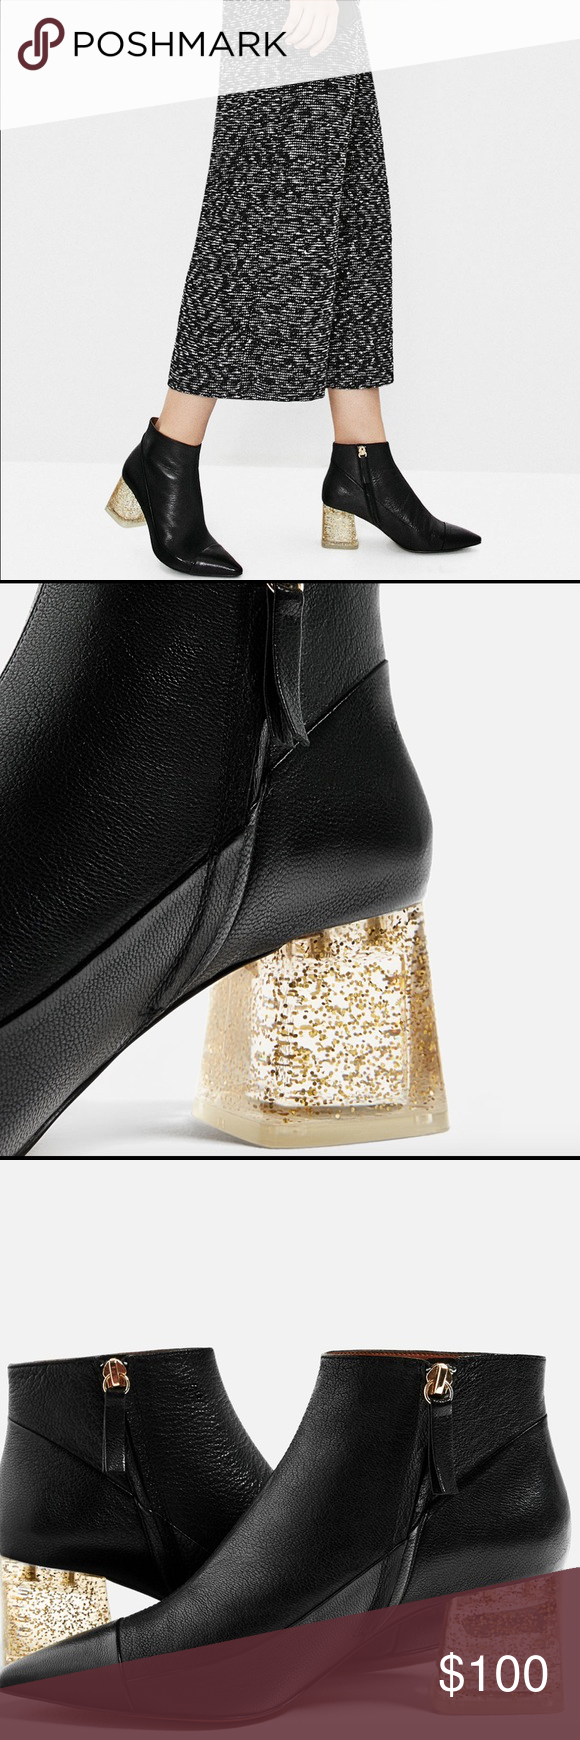 aed2a2cfa482 NWT Zara Leather Ankle Boot With Methacrylate Heel Black leather ankle  boots with transparent sparkly methacrylate heel detail. Pointed toe.